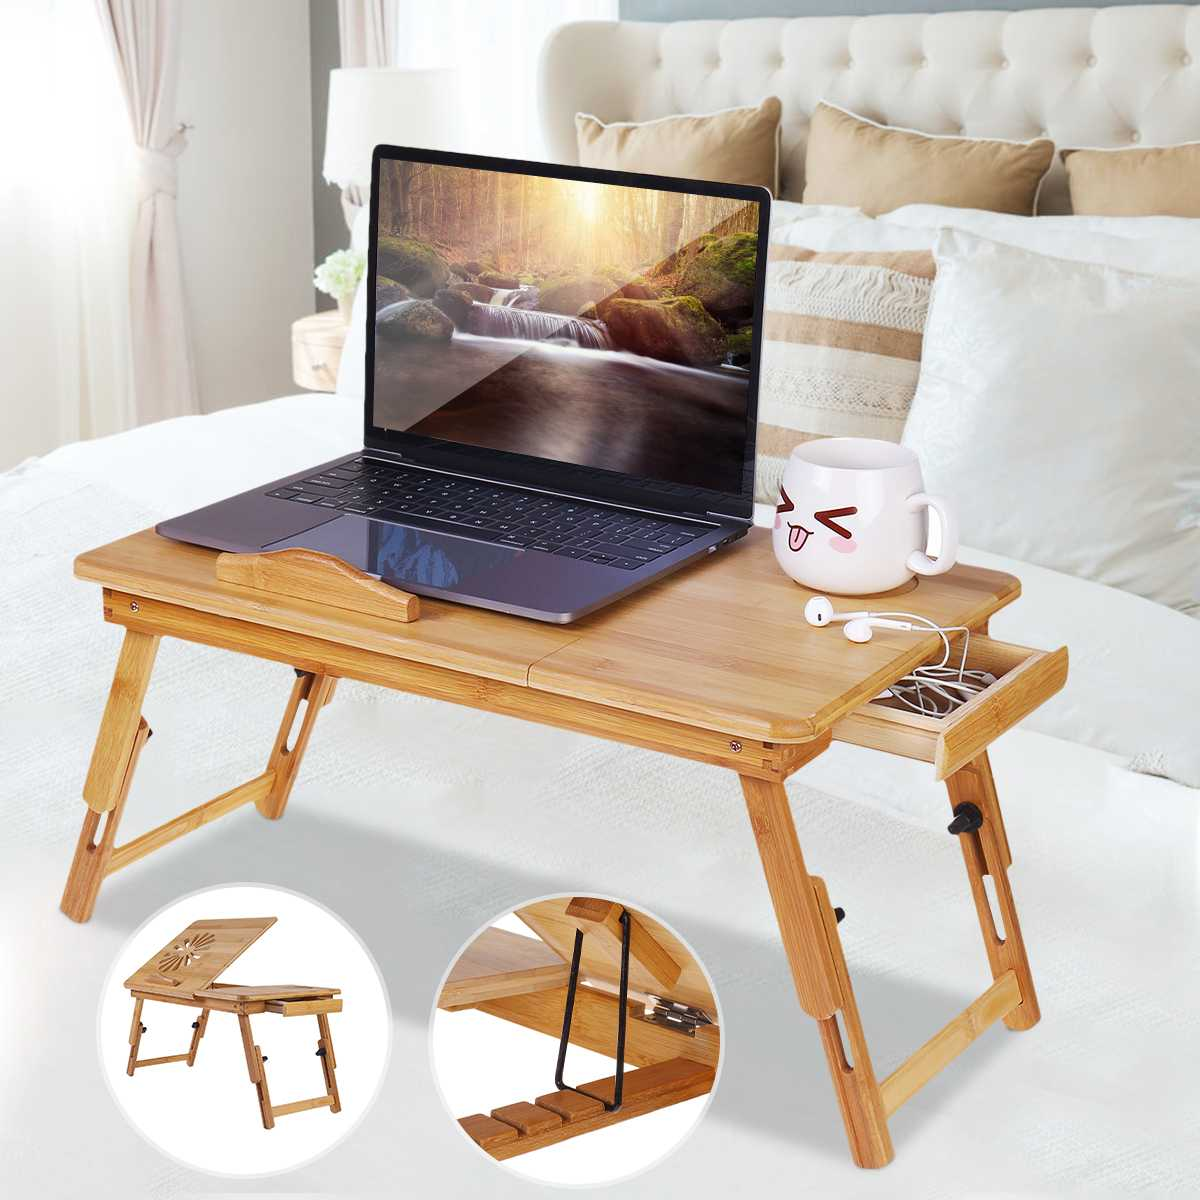 Portable Bamboo Folding Laptop Desk Notebook Table Adjustable Breakfast Serving Tray Bed Table With Drawer Working In Bed Sofa